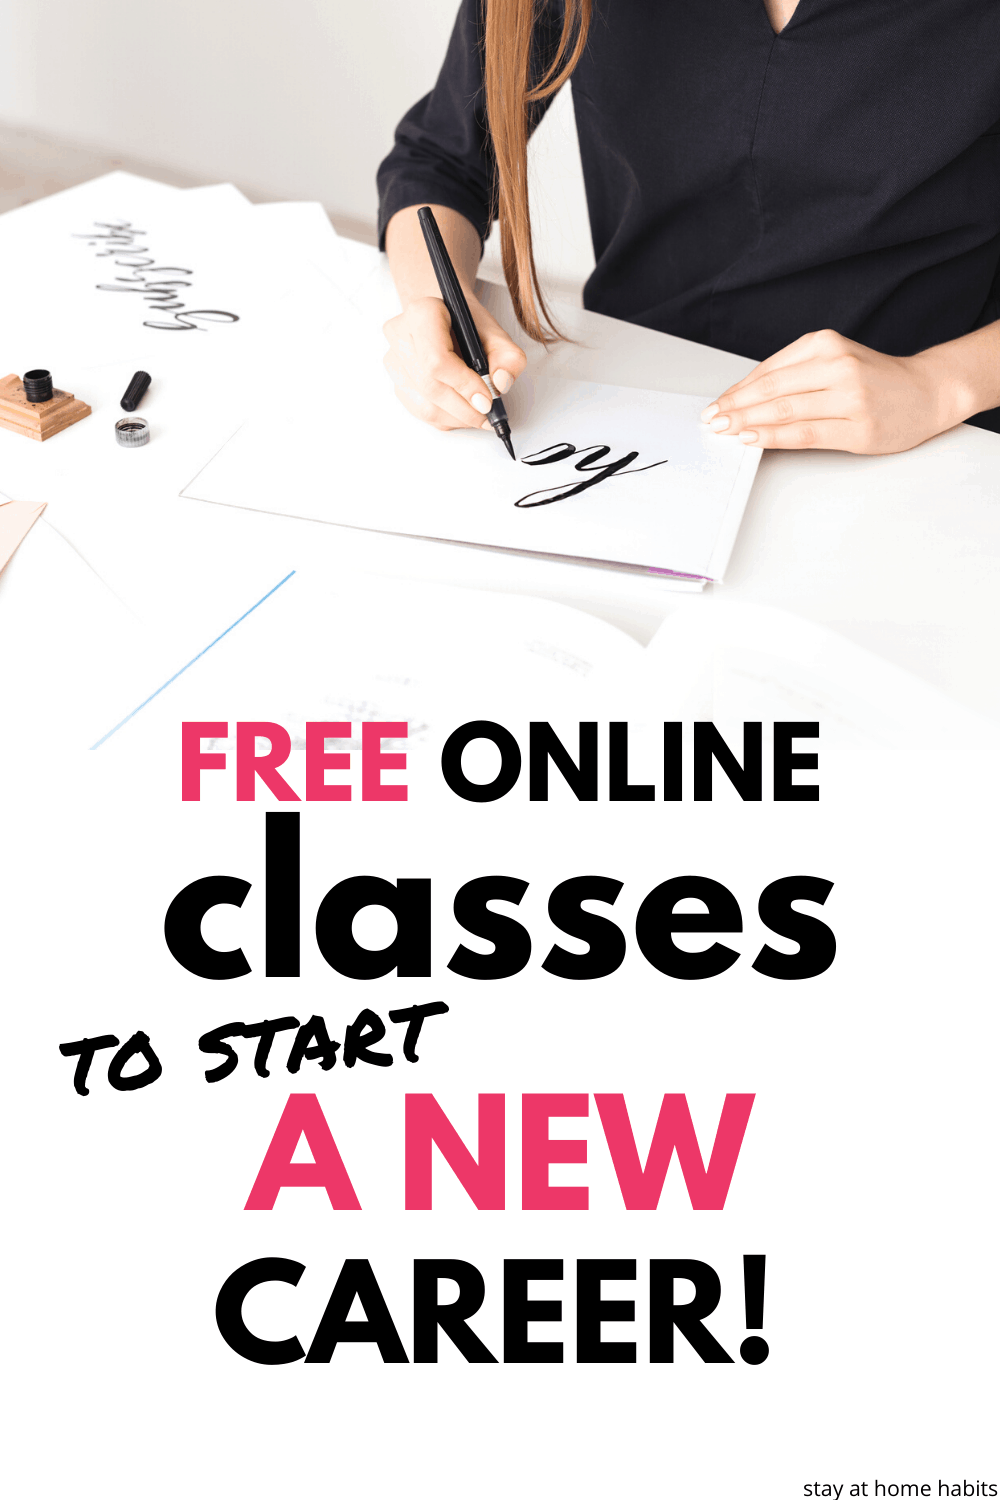 Begin free online classes to start a new career in calligraphy, art, illustration, photography graphic design and more! Make money online with your new side hustle!